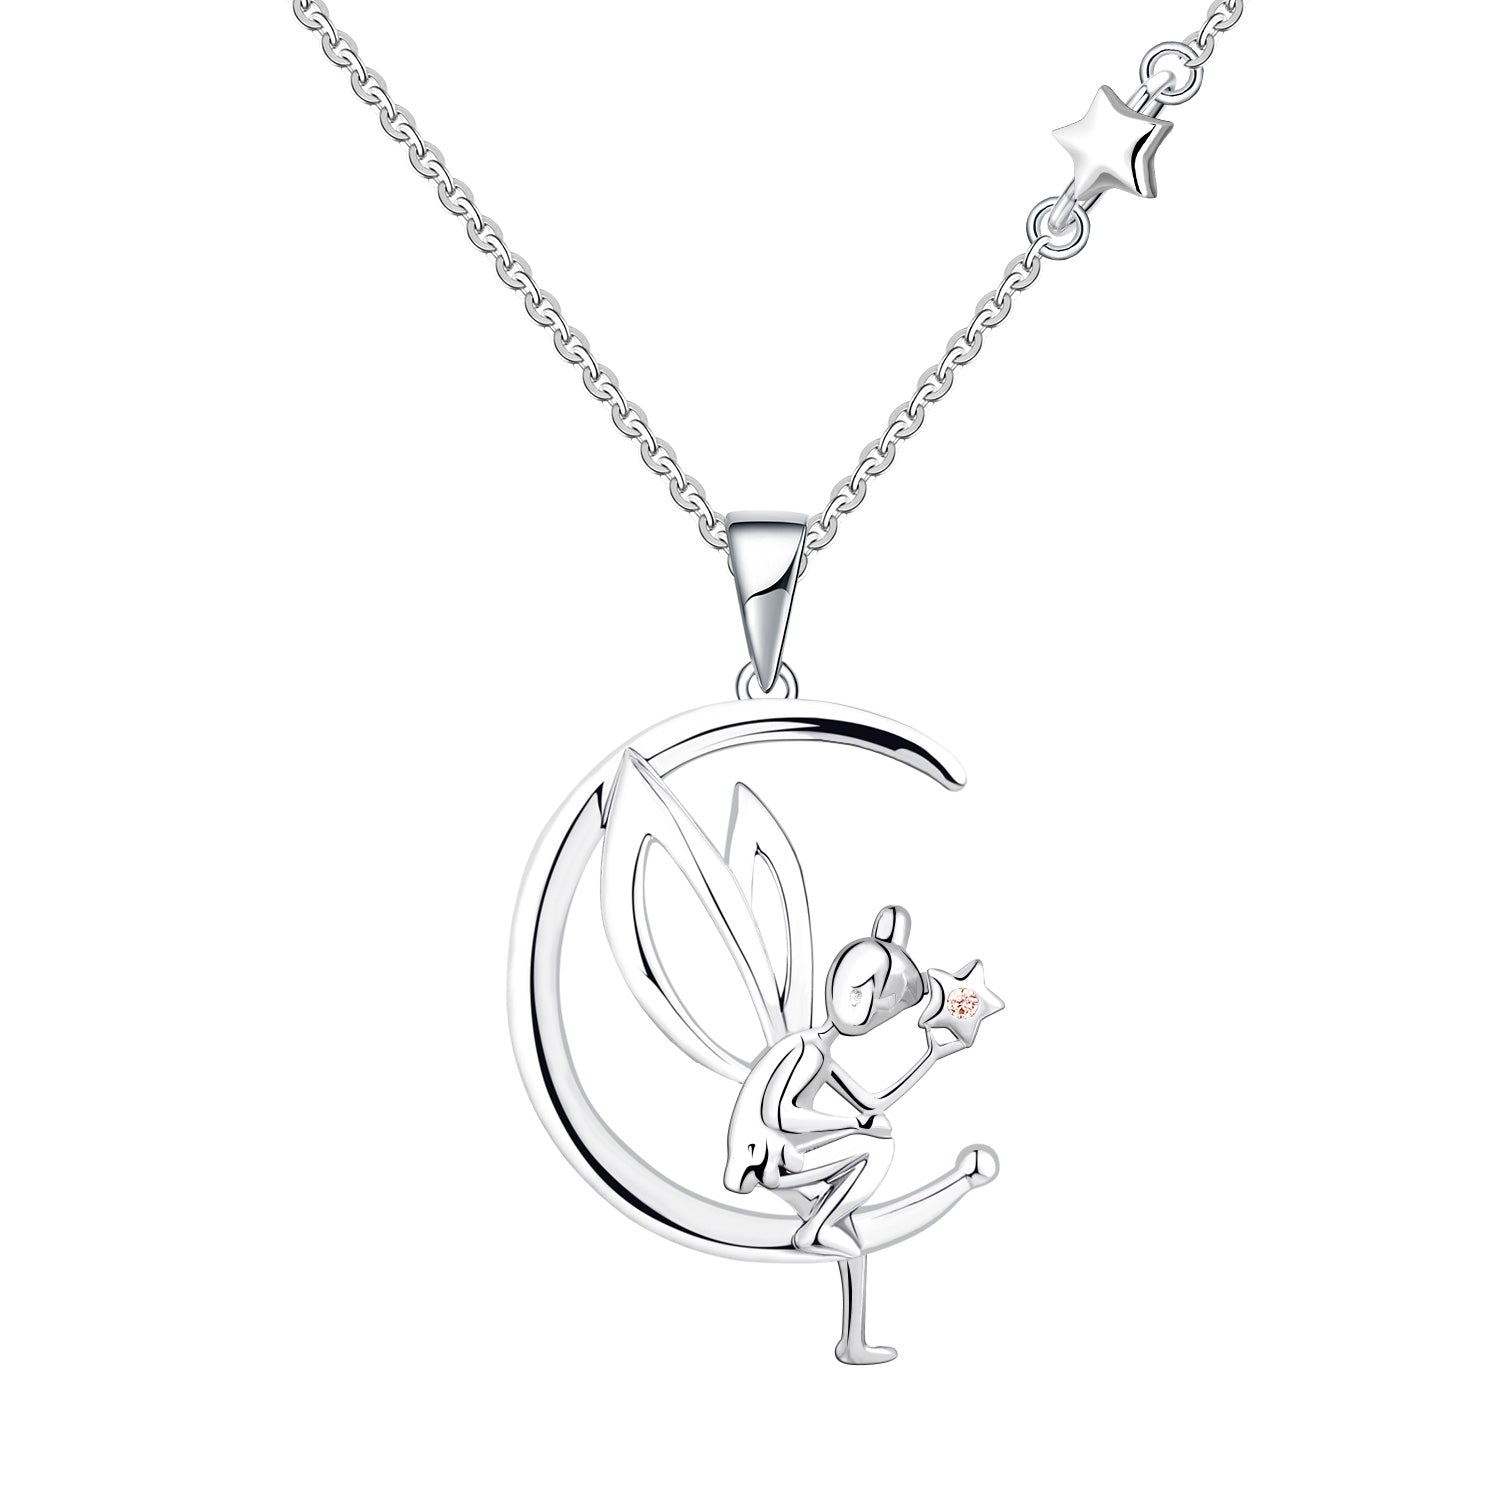 Farjary 925 Silver Moon and Fairy Neckace Asymmetry Necklace for Women Ladies